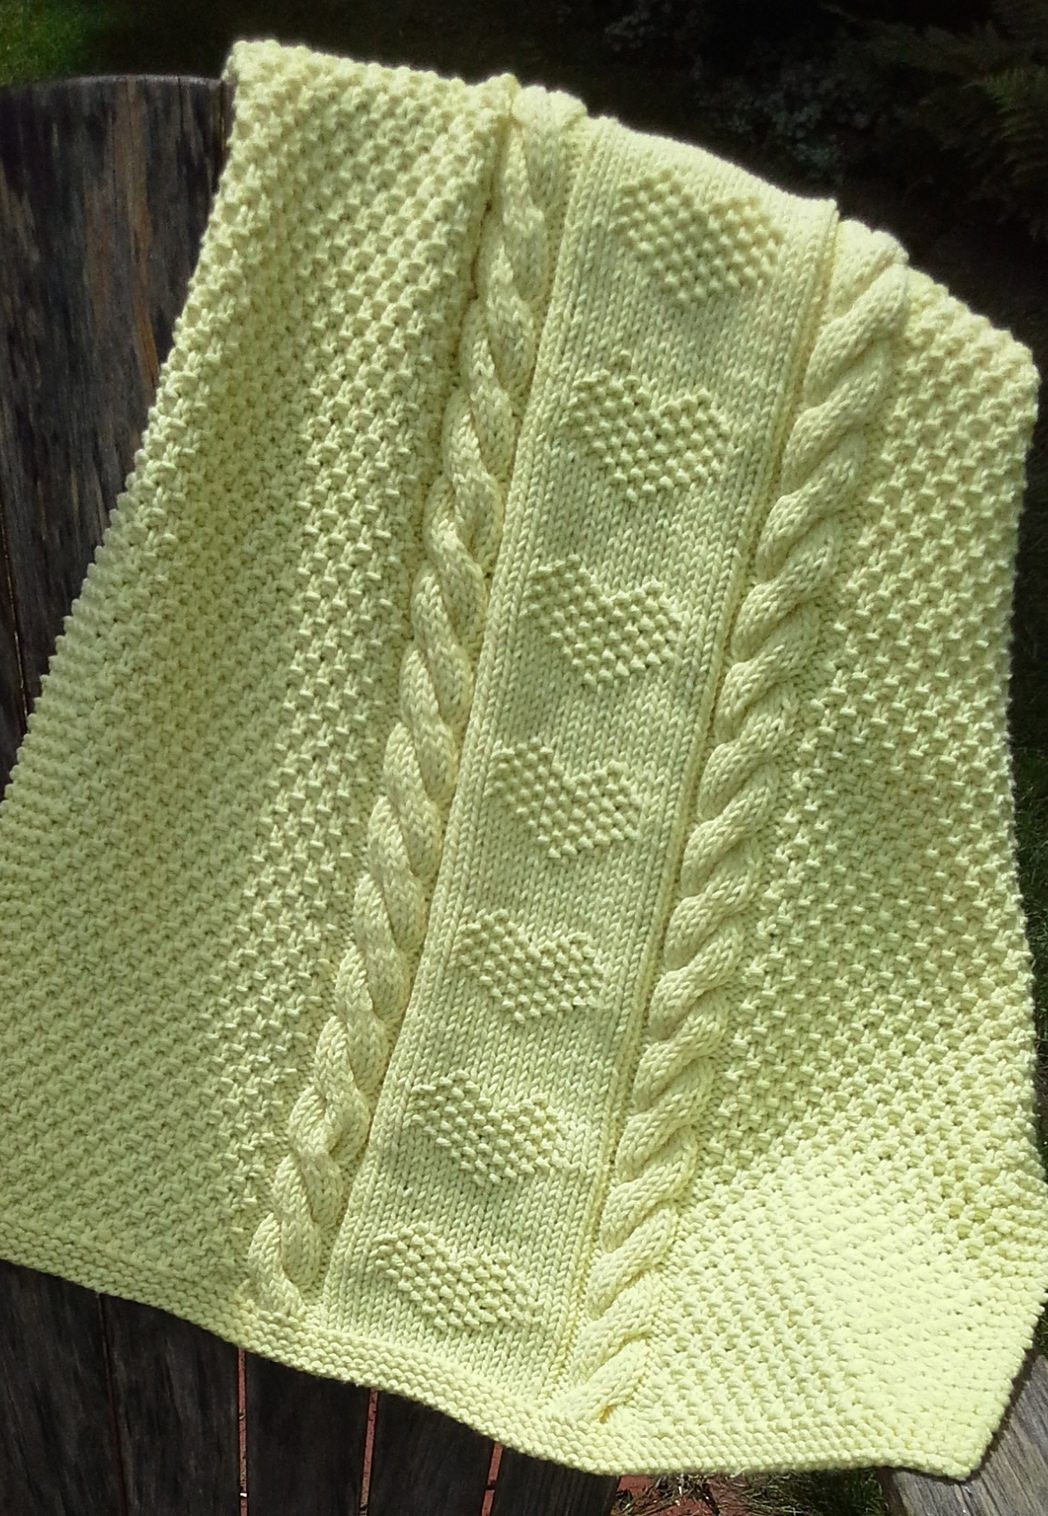 Blanket Patterns Awesome Quick Baby Blanket Knitting Patterns Of Fresh 49 Pics Blanket Patterns